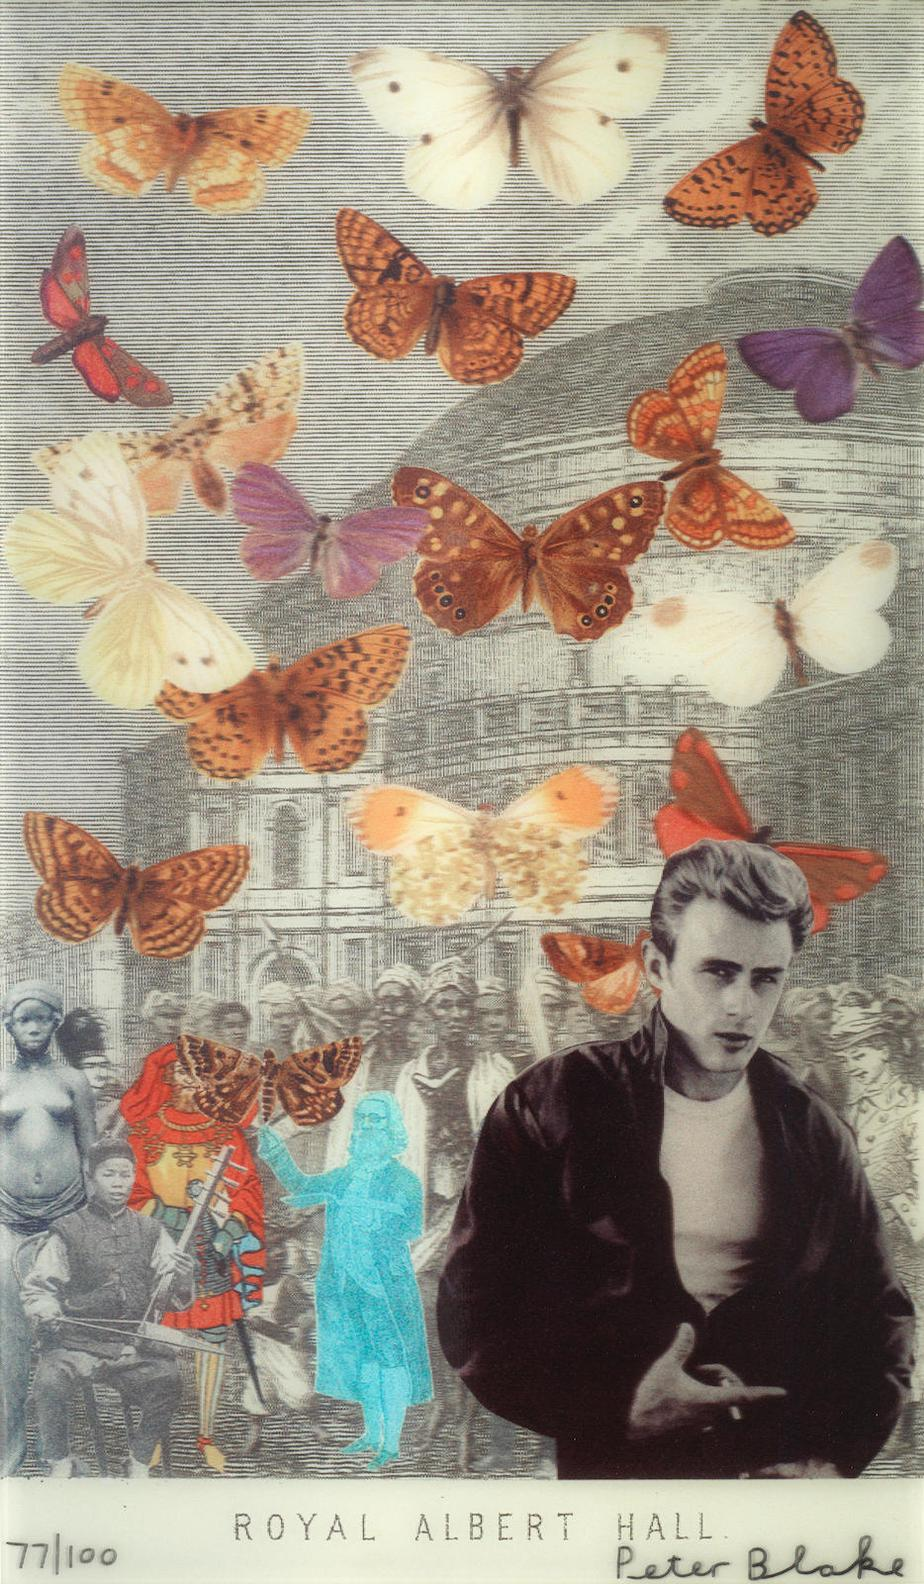 Sir Peter Blake - James Dean At The Royal Albert Hall-2012